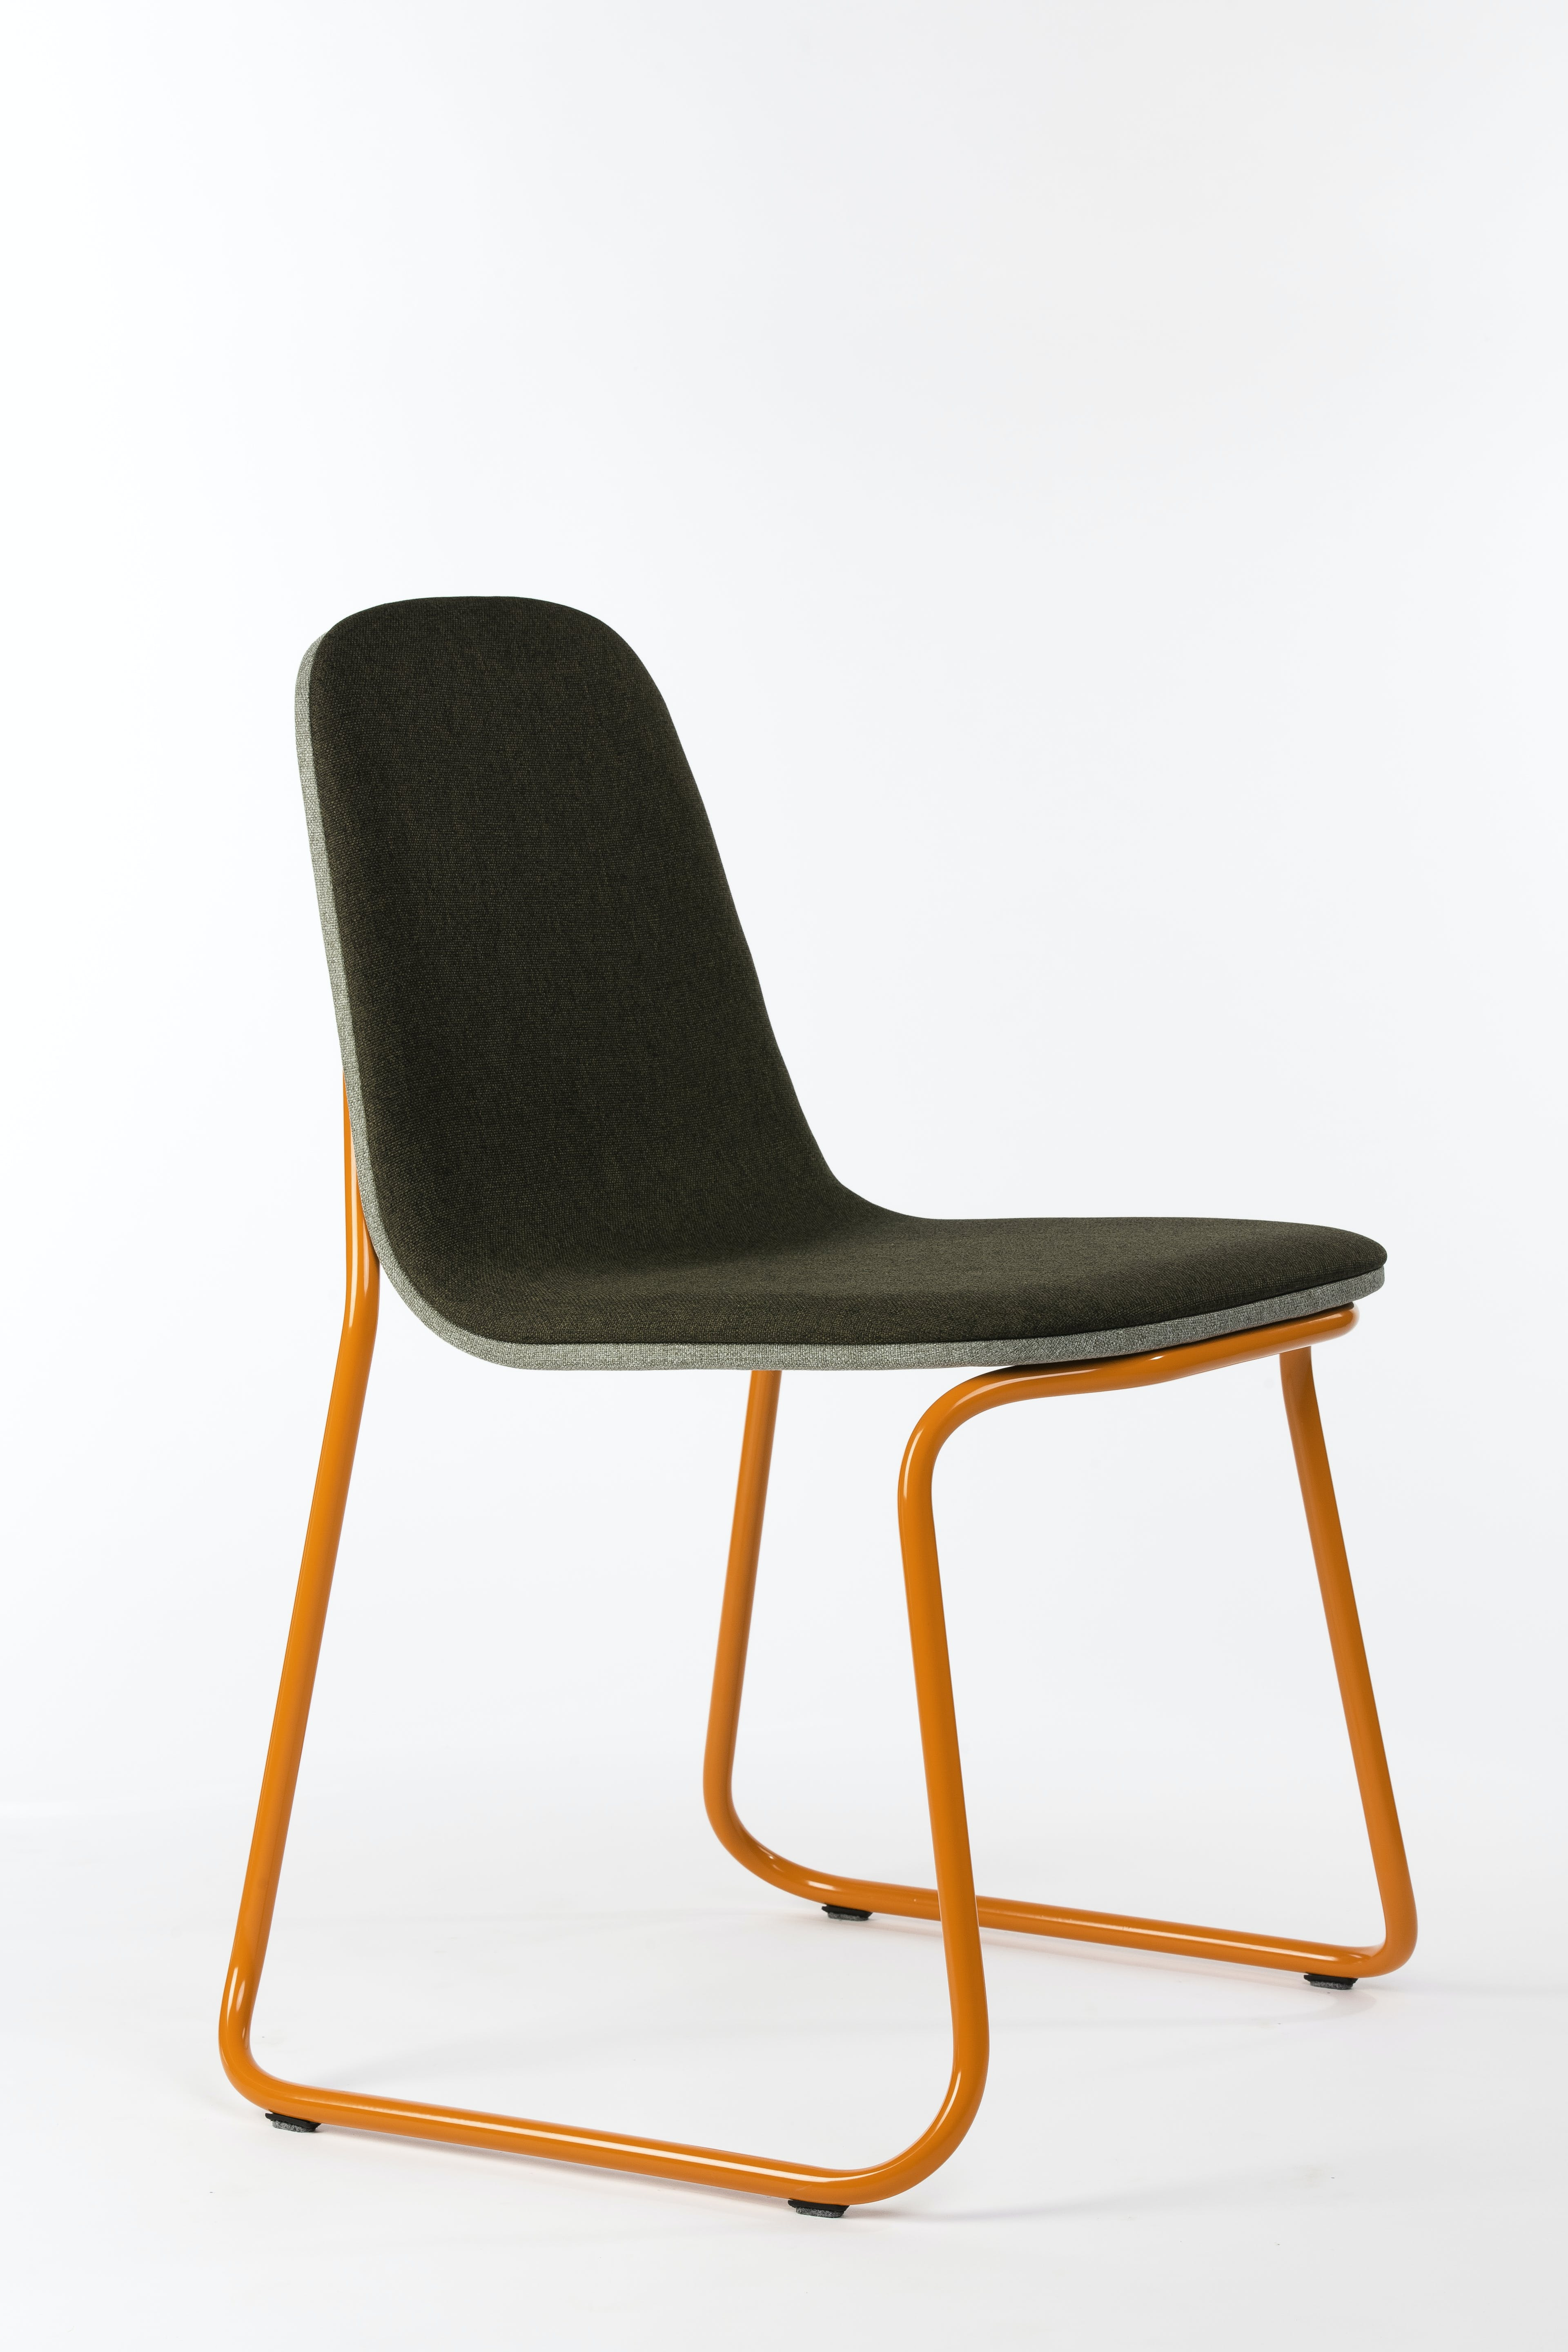 Bogaerts Label Orange Frame Siren Chair Angle Haute Living